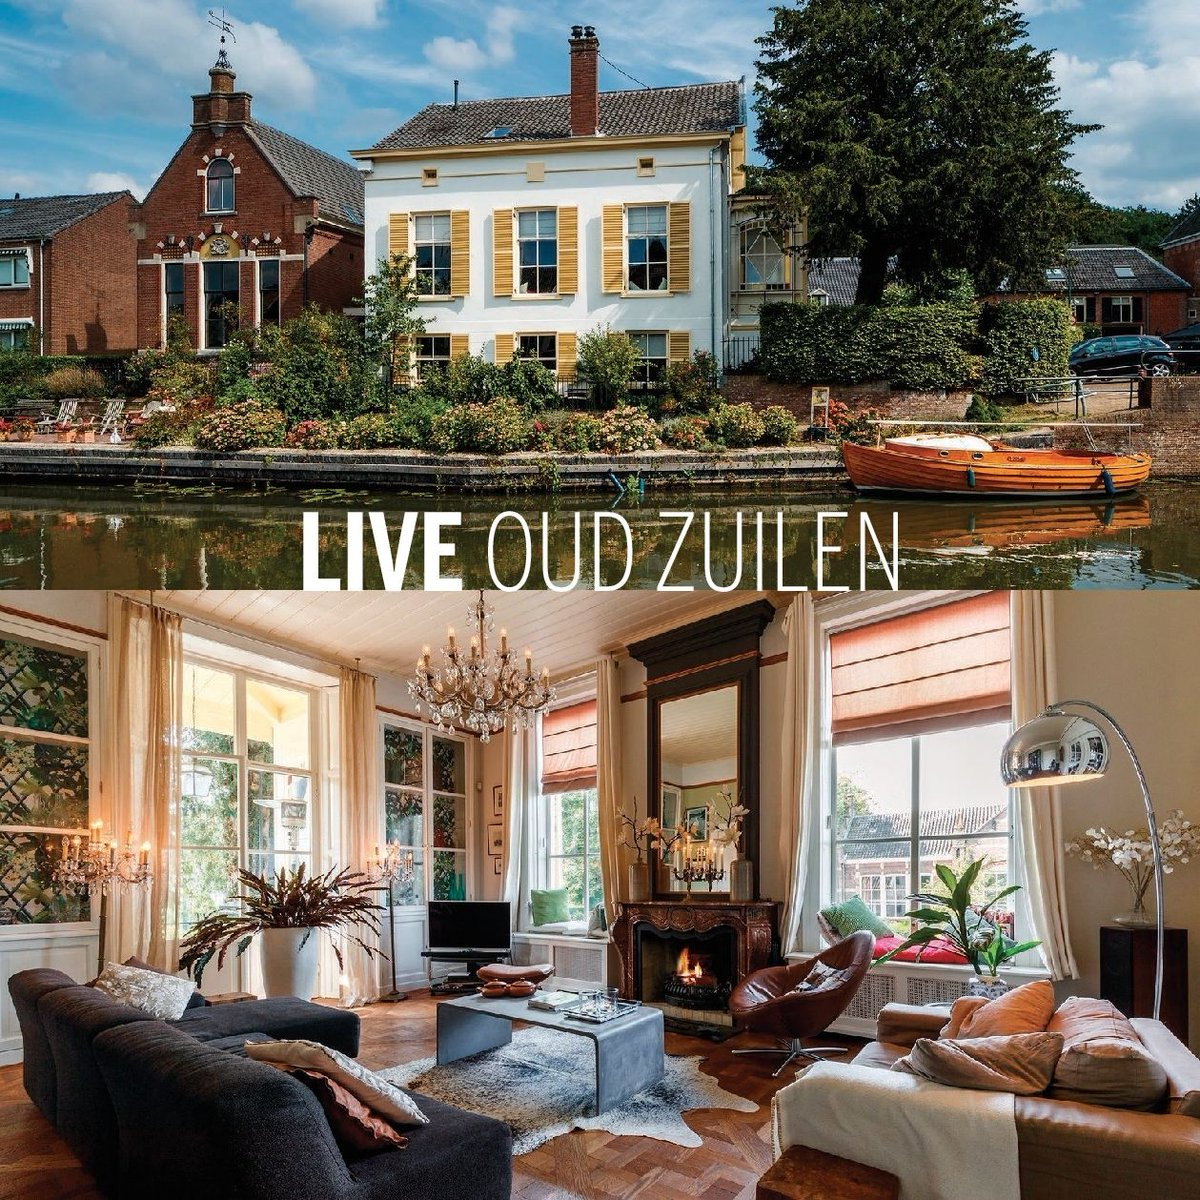 LIVE OUD ZUILEN -- Just outside Utrecht in the charming village of Oud Zuilen you will find this enchanting mansion with a charming garden. #OudZuilen #historic #monument #sothebysrealtynetherlands #sothebysrealty #Netherlands   INFO: https://buff.ly/2X2flmc